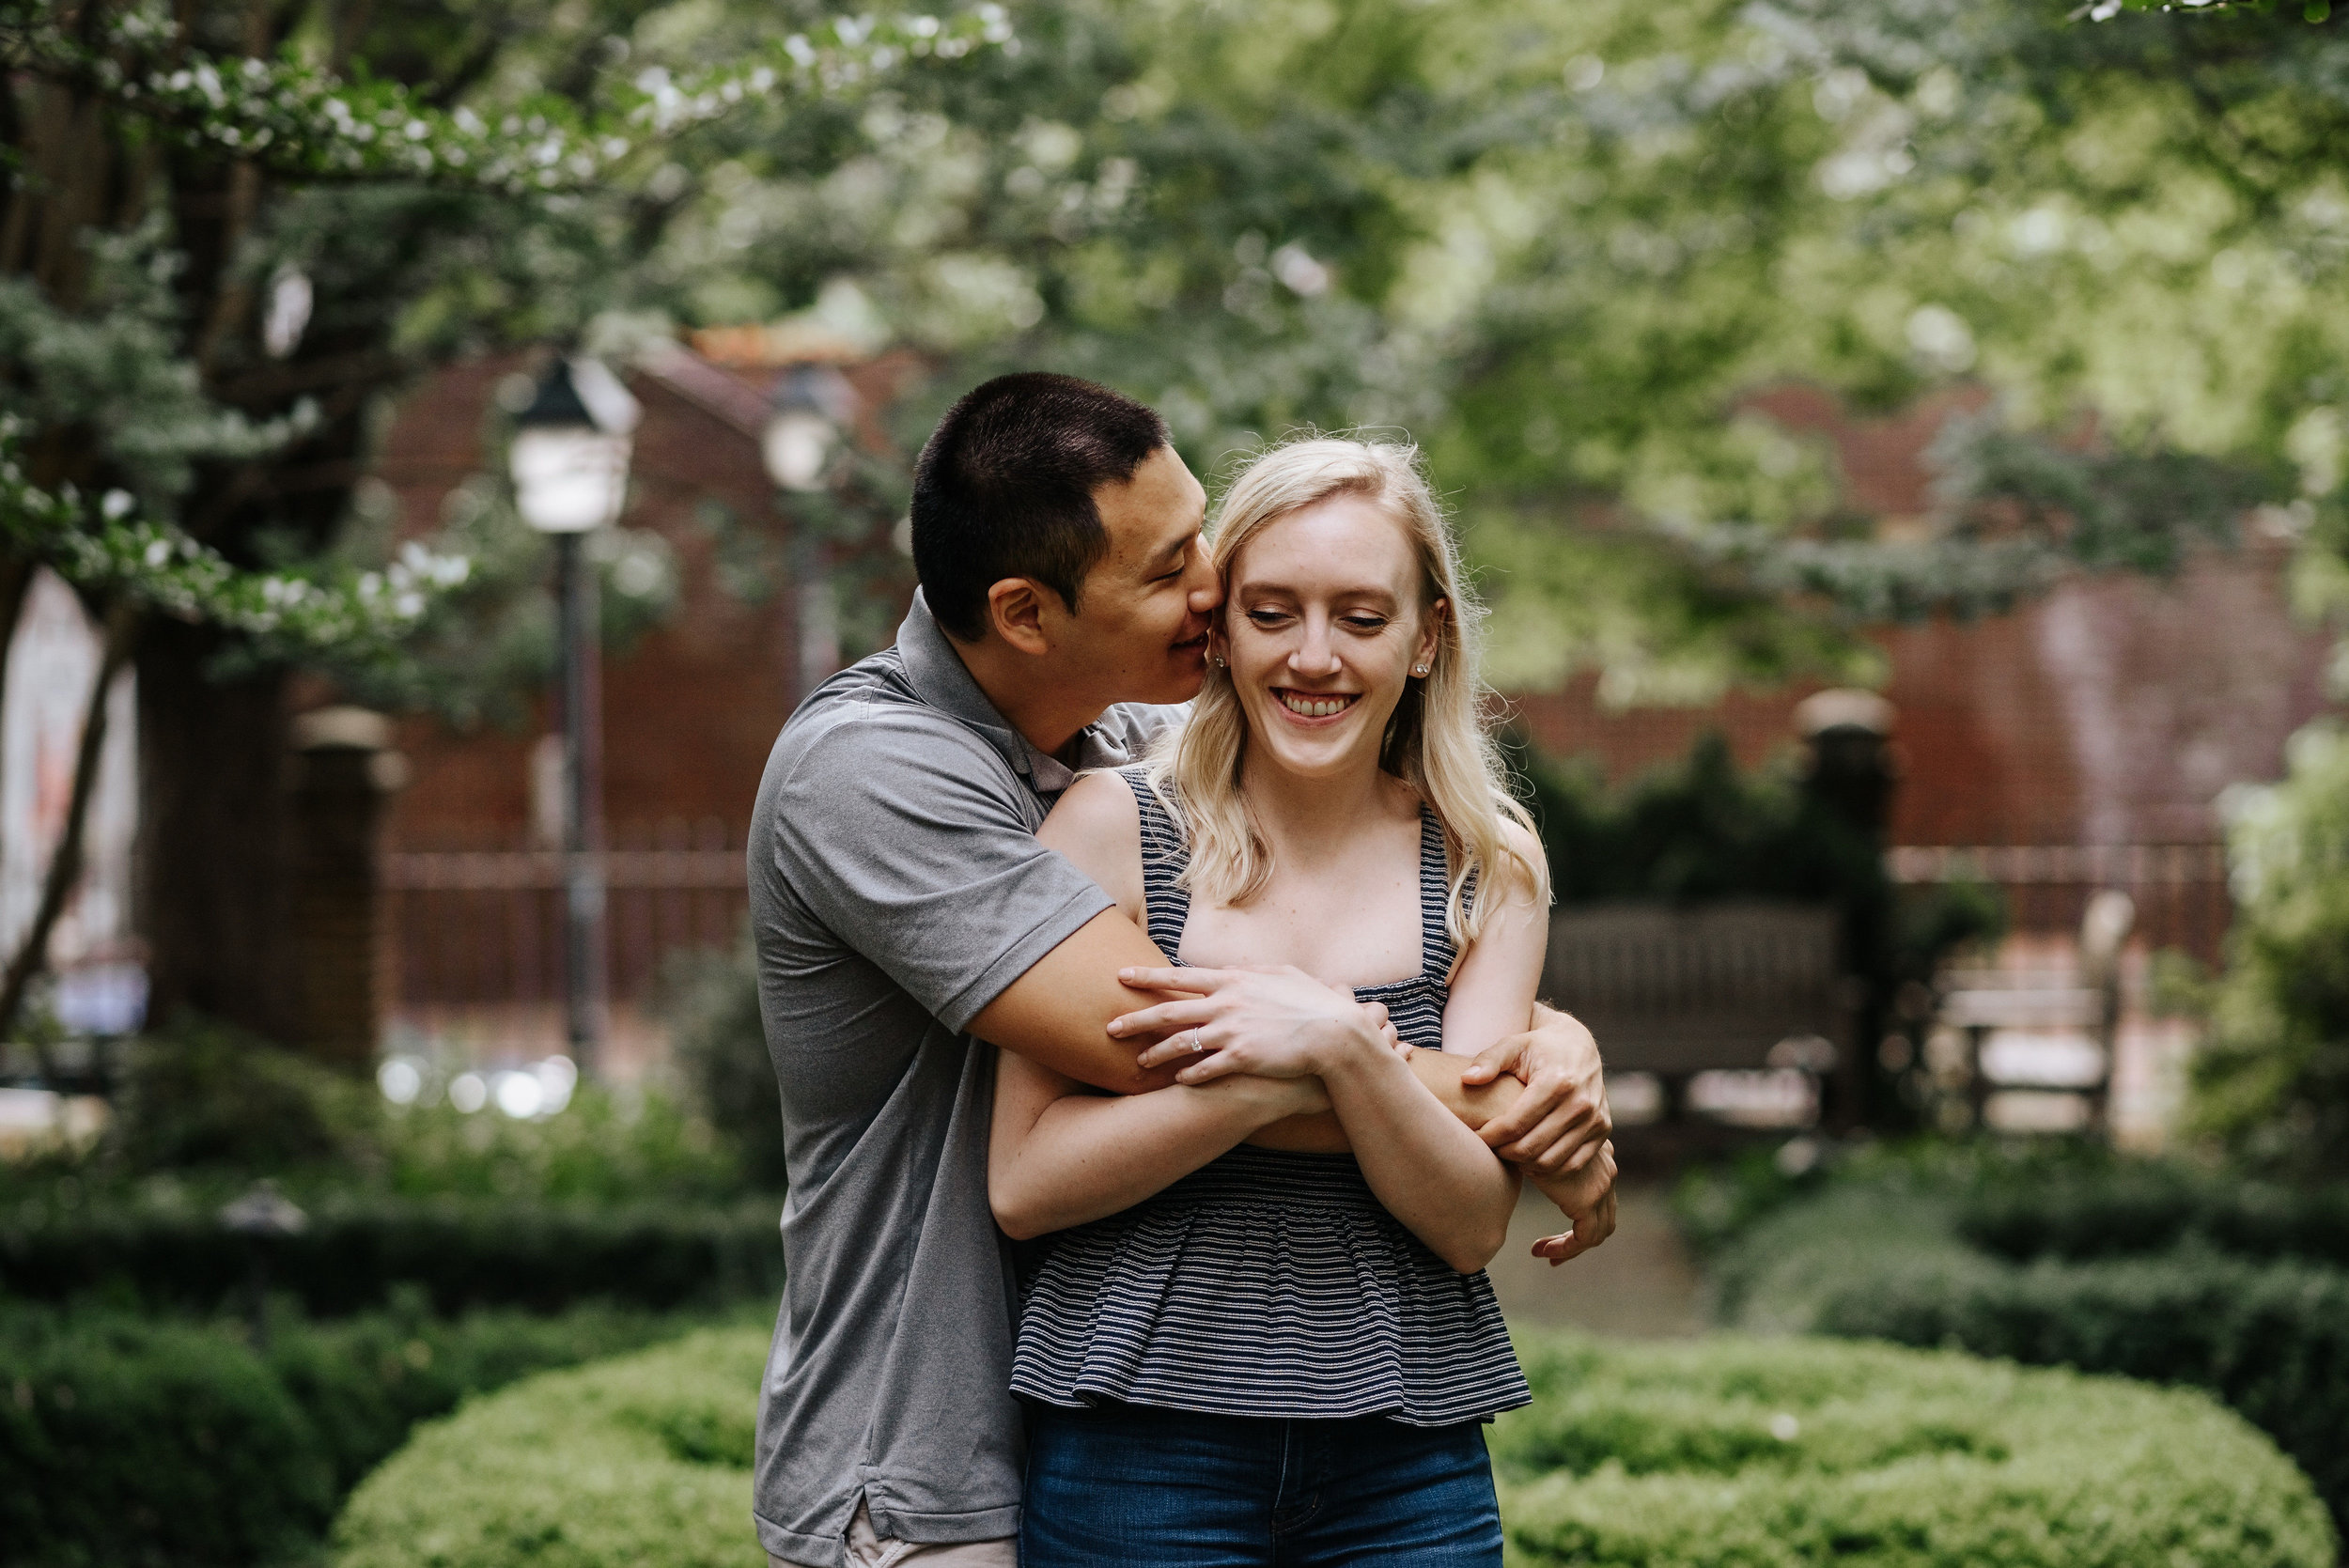 Bella_Alec_Old_Town_Alexandria_Engagement_Session_Photography_by_V_5914.jpg